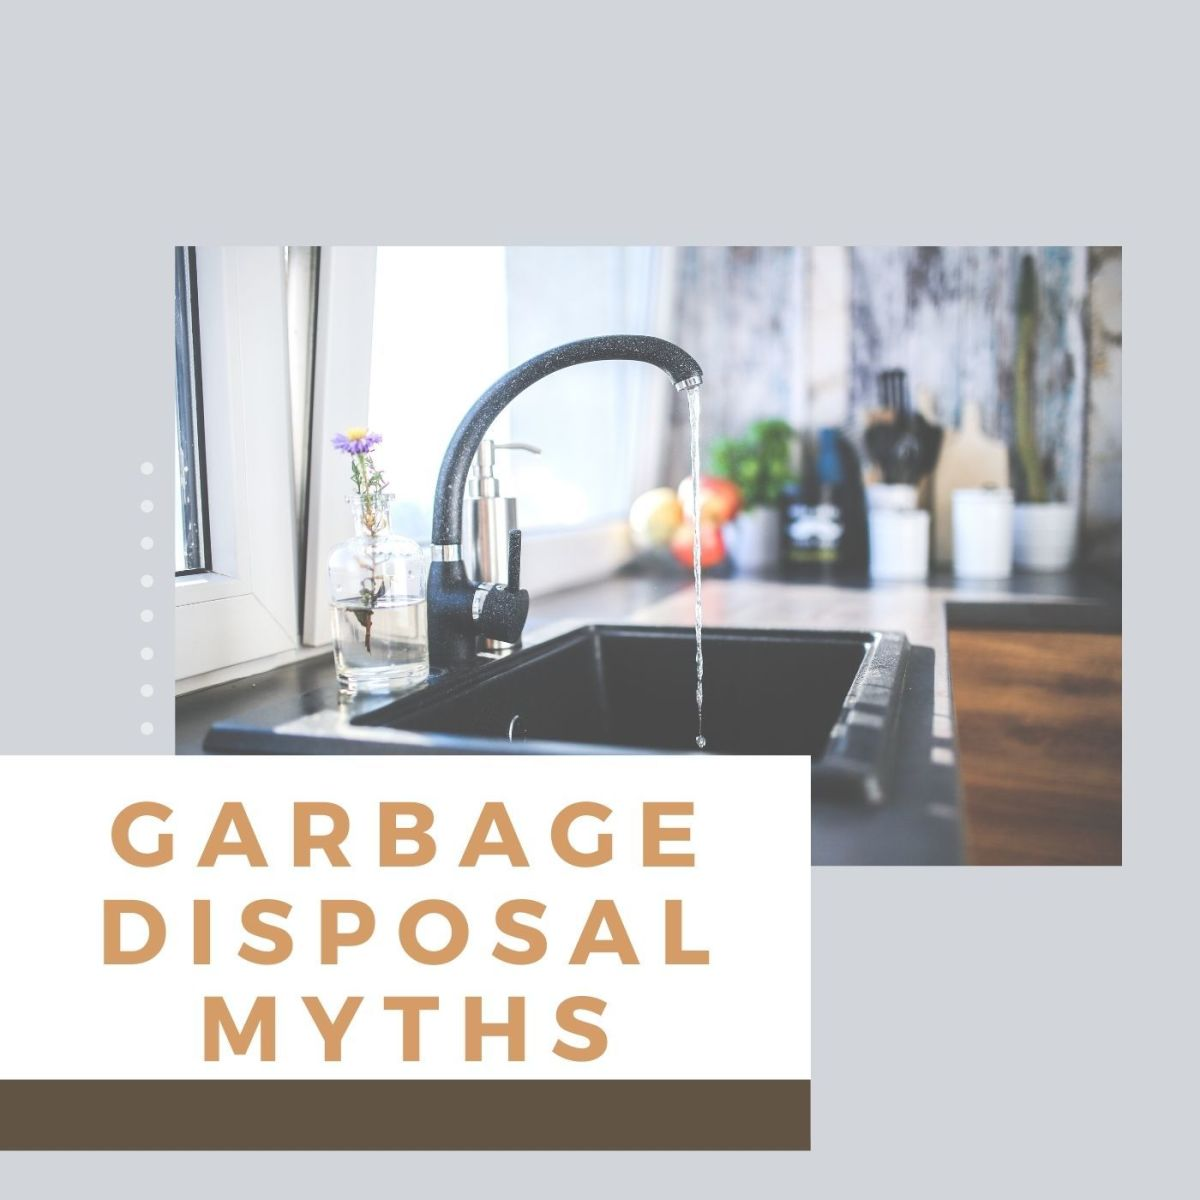 Are garbage disposals bad? Read to find out!